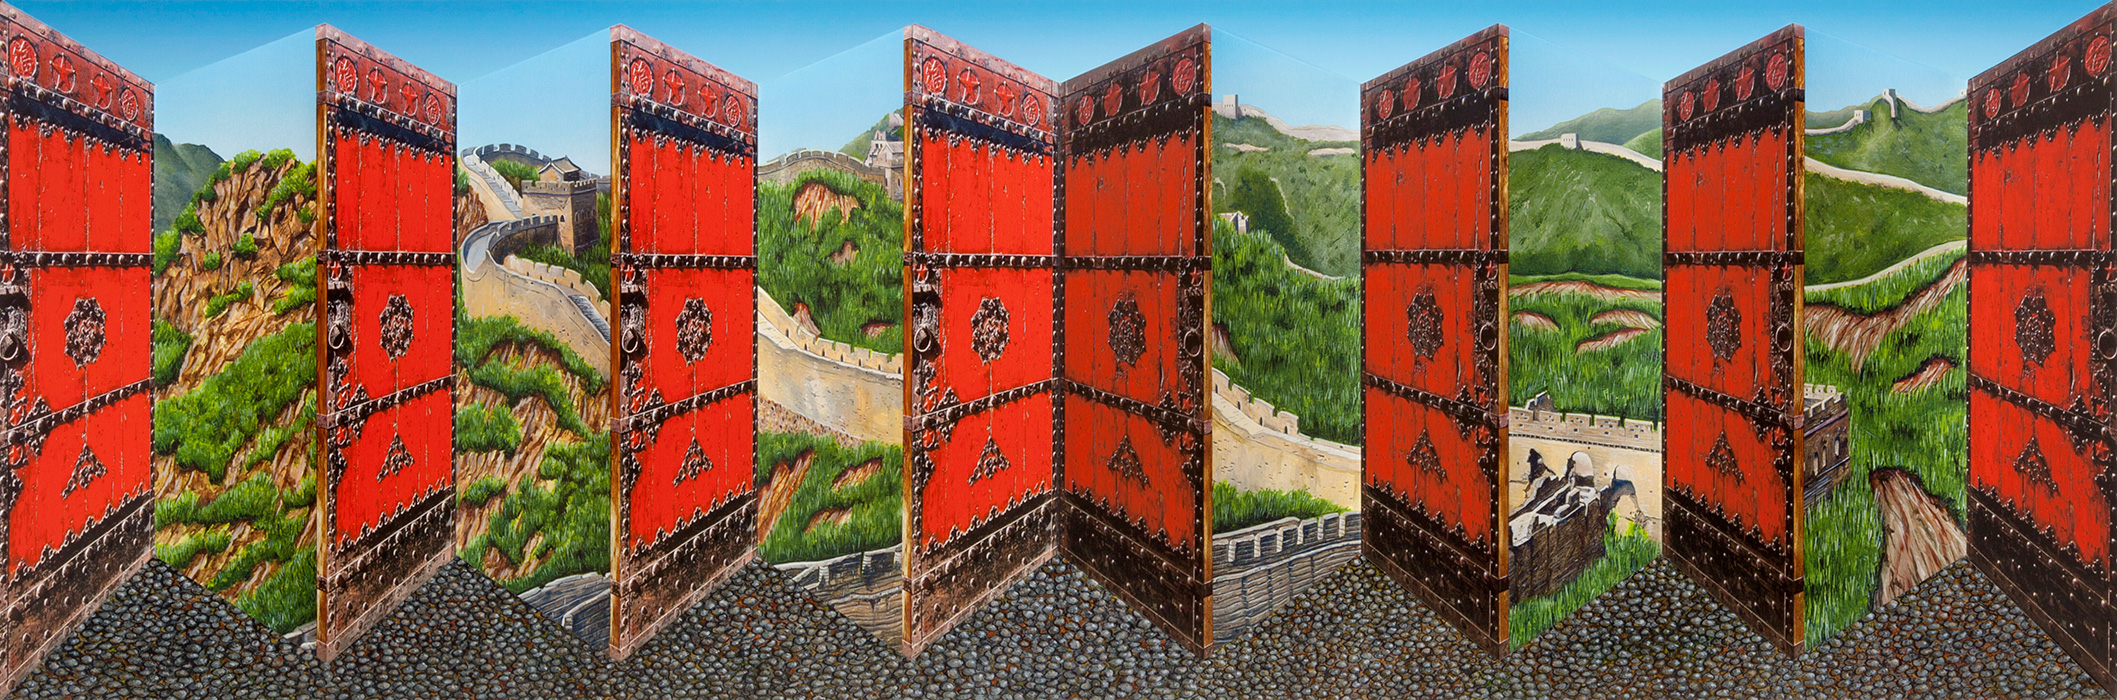 Great Wall <p>2016 | Edition 50 | 46 x 113 x 16 cm / 18¼ x 44½ x 6¼ in</p>